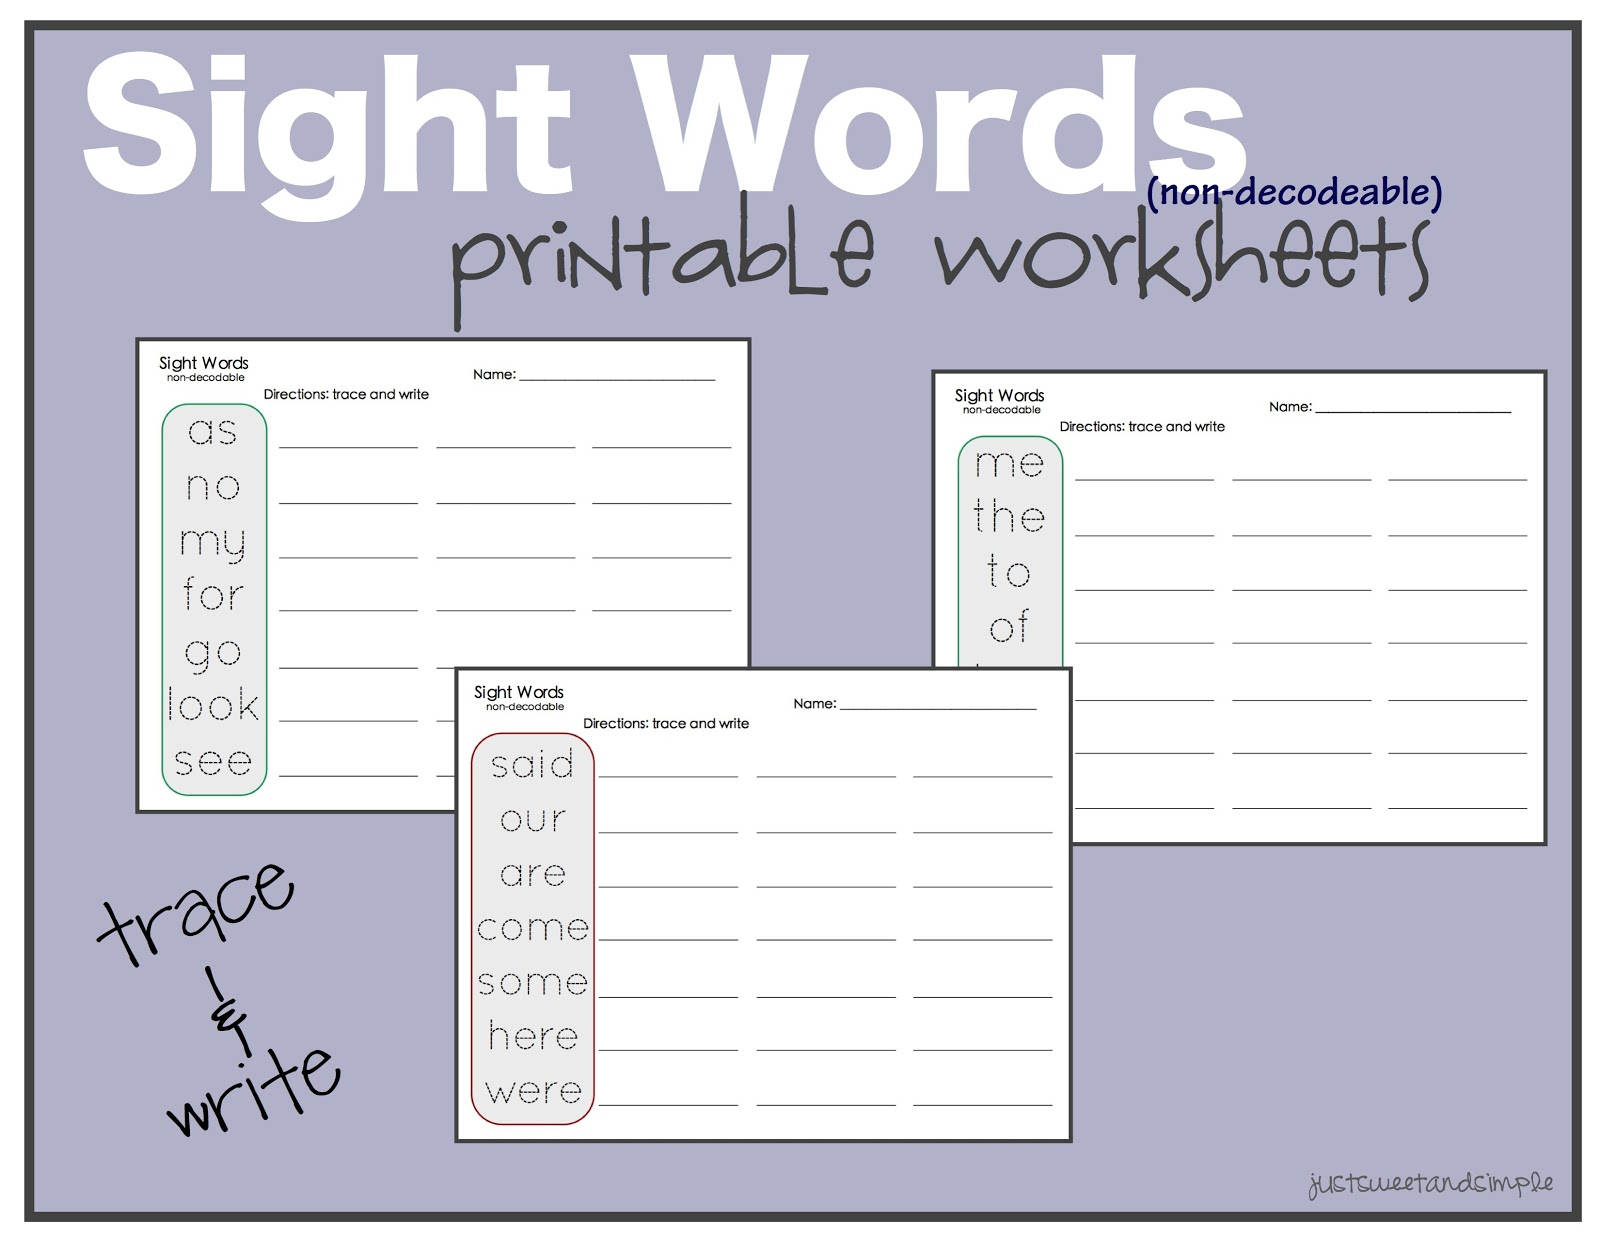 Worksheet Sight Words For Preschool Wosenly Free Worksheet – Kindergarten Word Worksheets